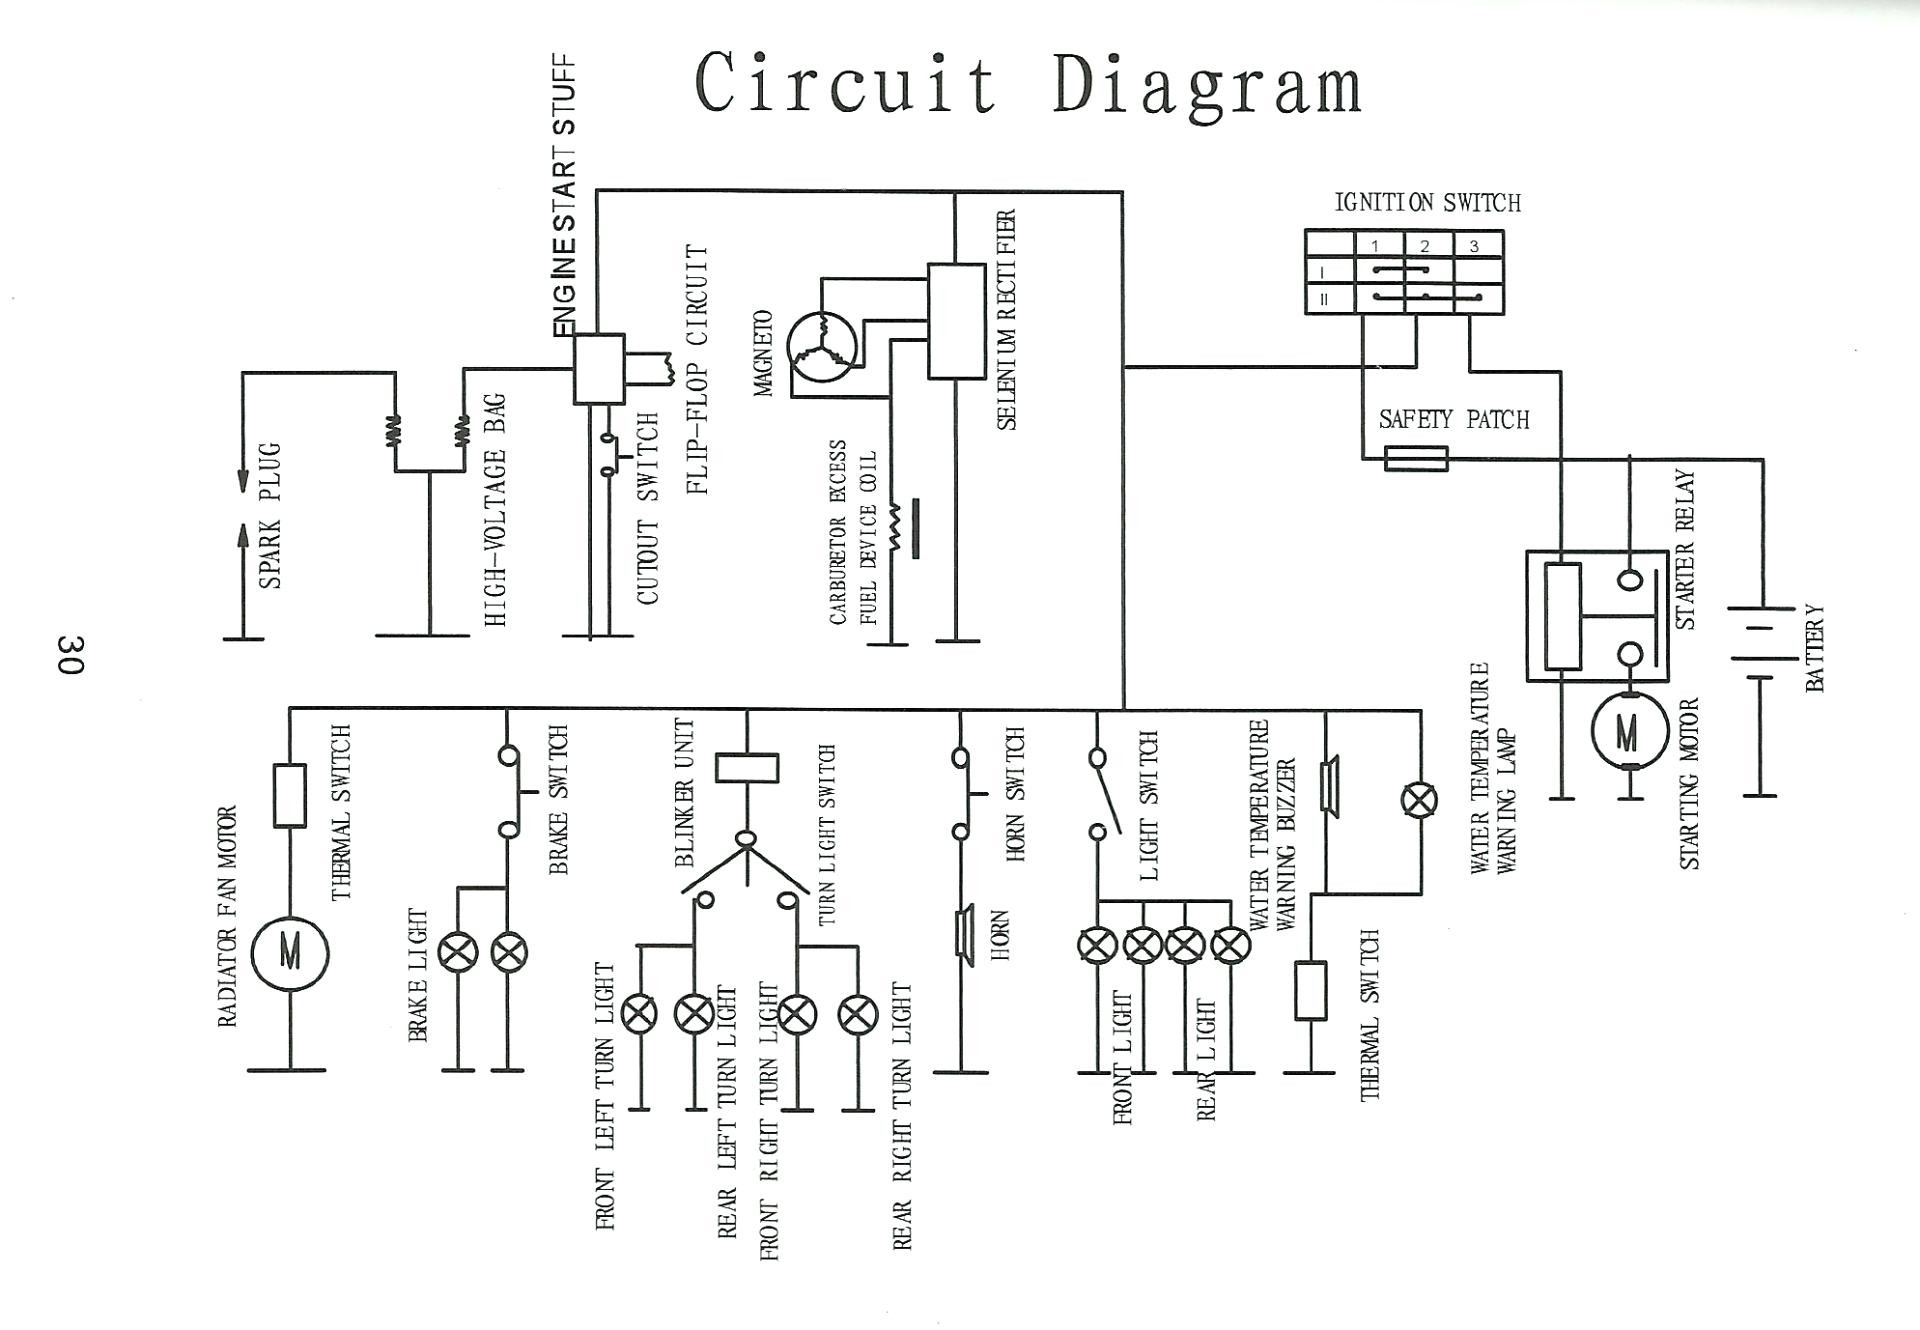 Tao Tao 150Cc Scooter Wiring Diagram | Wiring Diagram - 150Cc Scooter Wiring Diagram